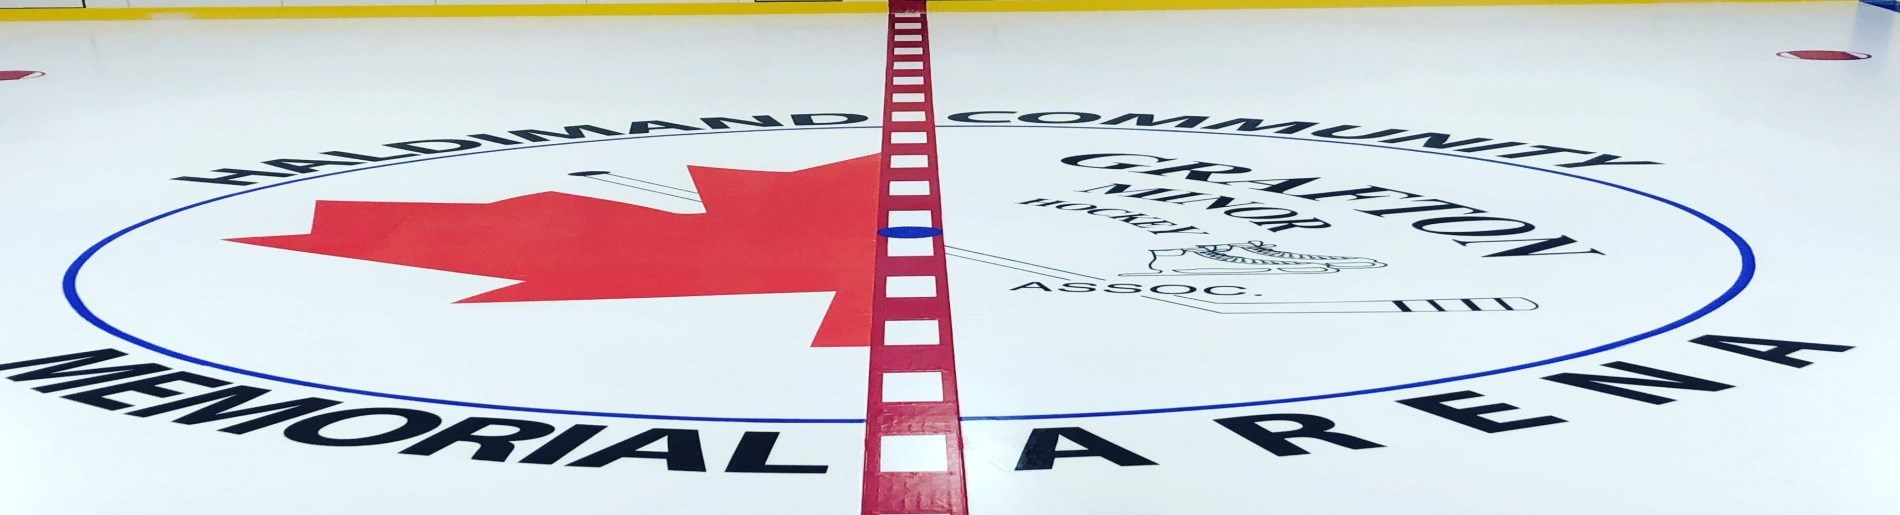 centre ice of a hockey arena